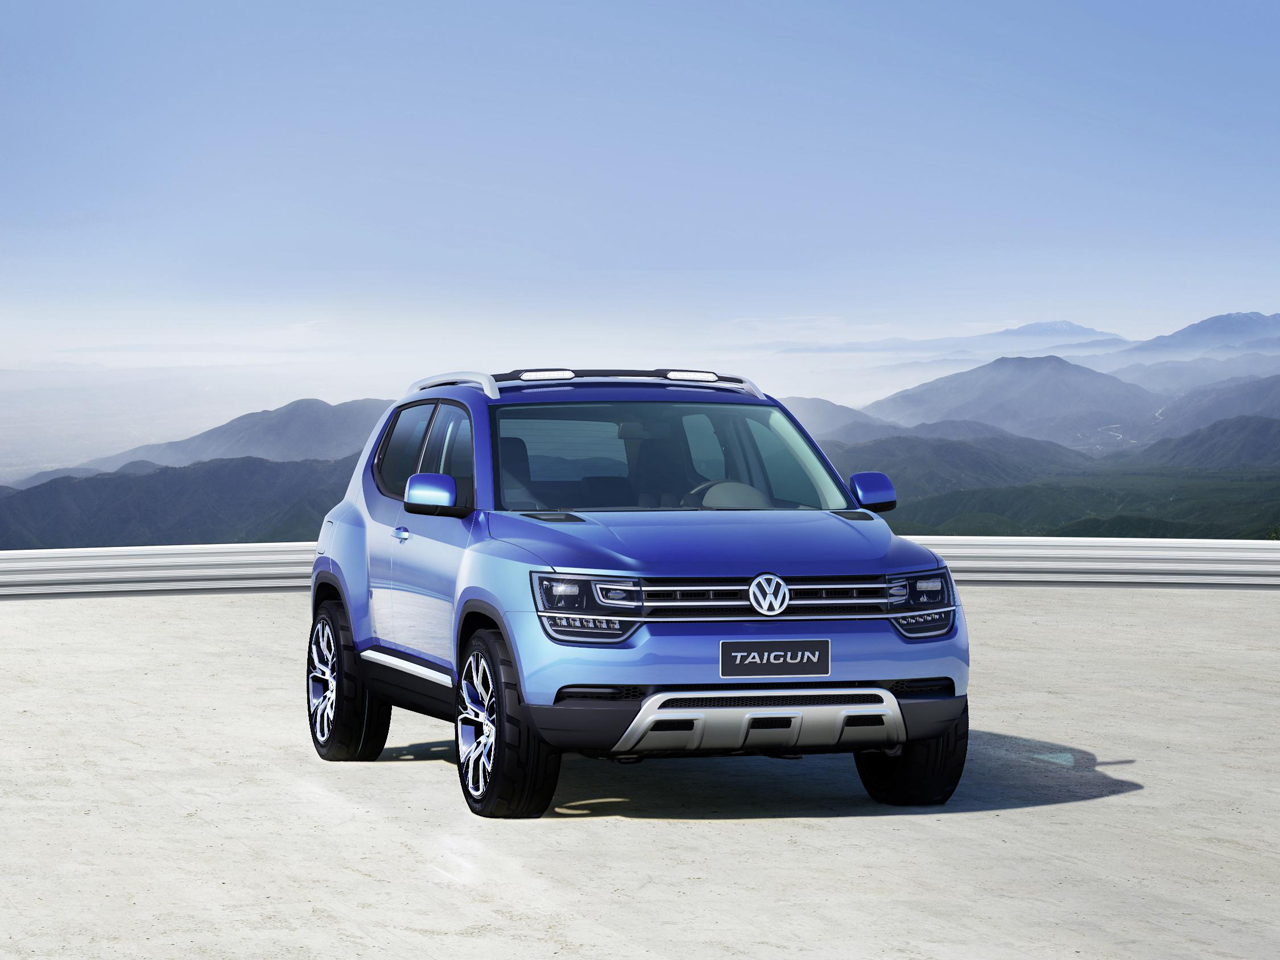 Does Volkswagen S Taigun Have What It Takes To Make A Dent In The Mini Suv Market